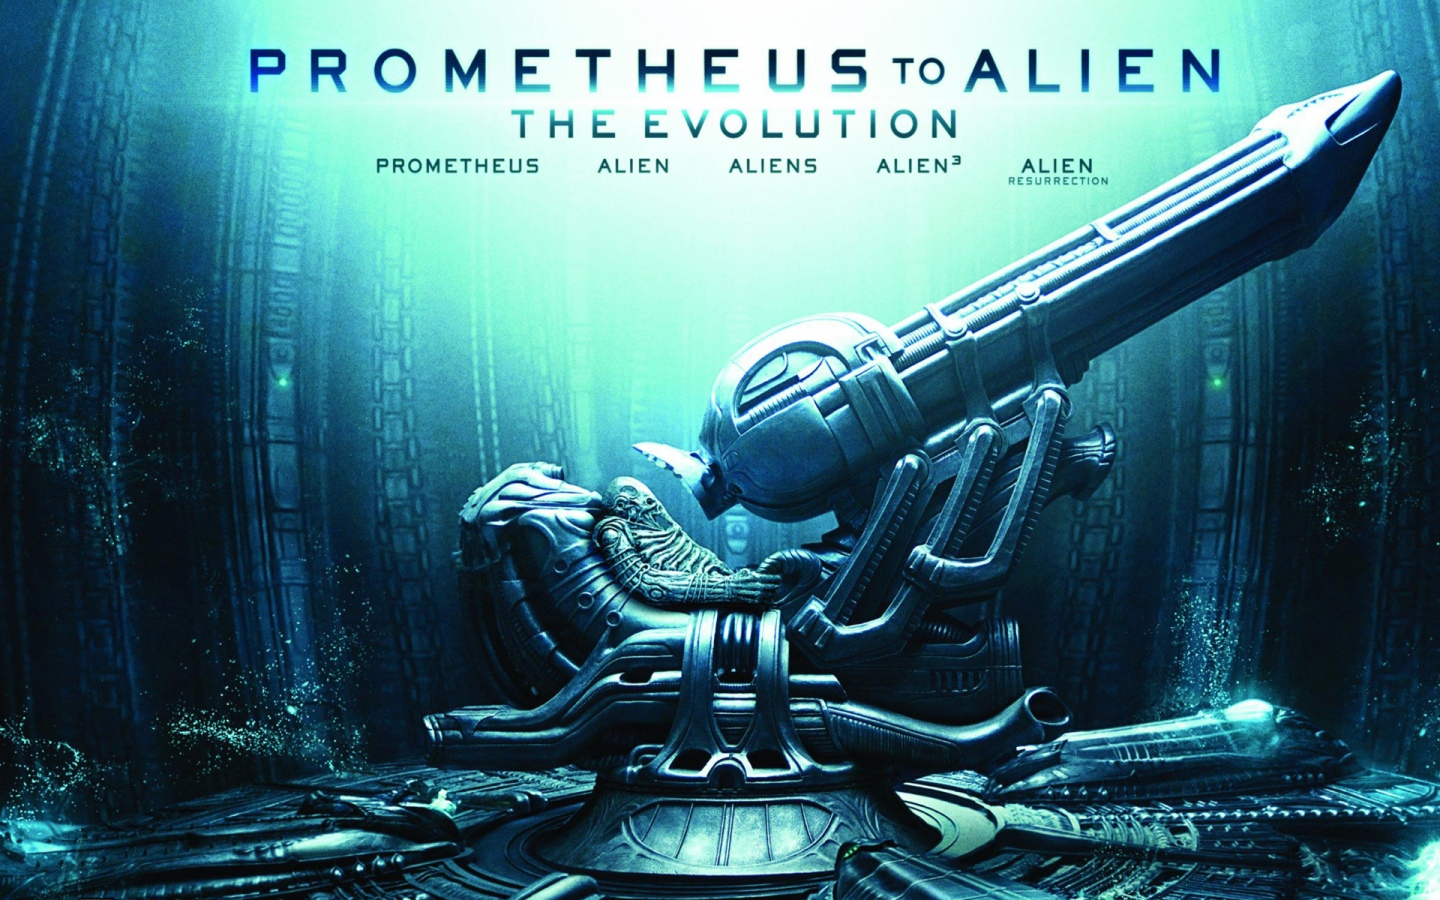 prometheus_to_alien_the_evolution-wide